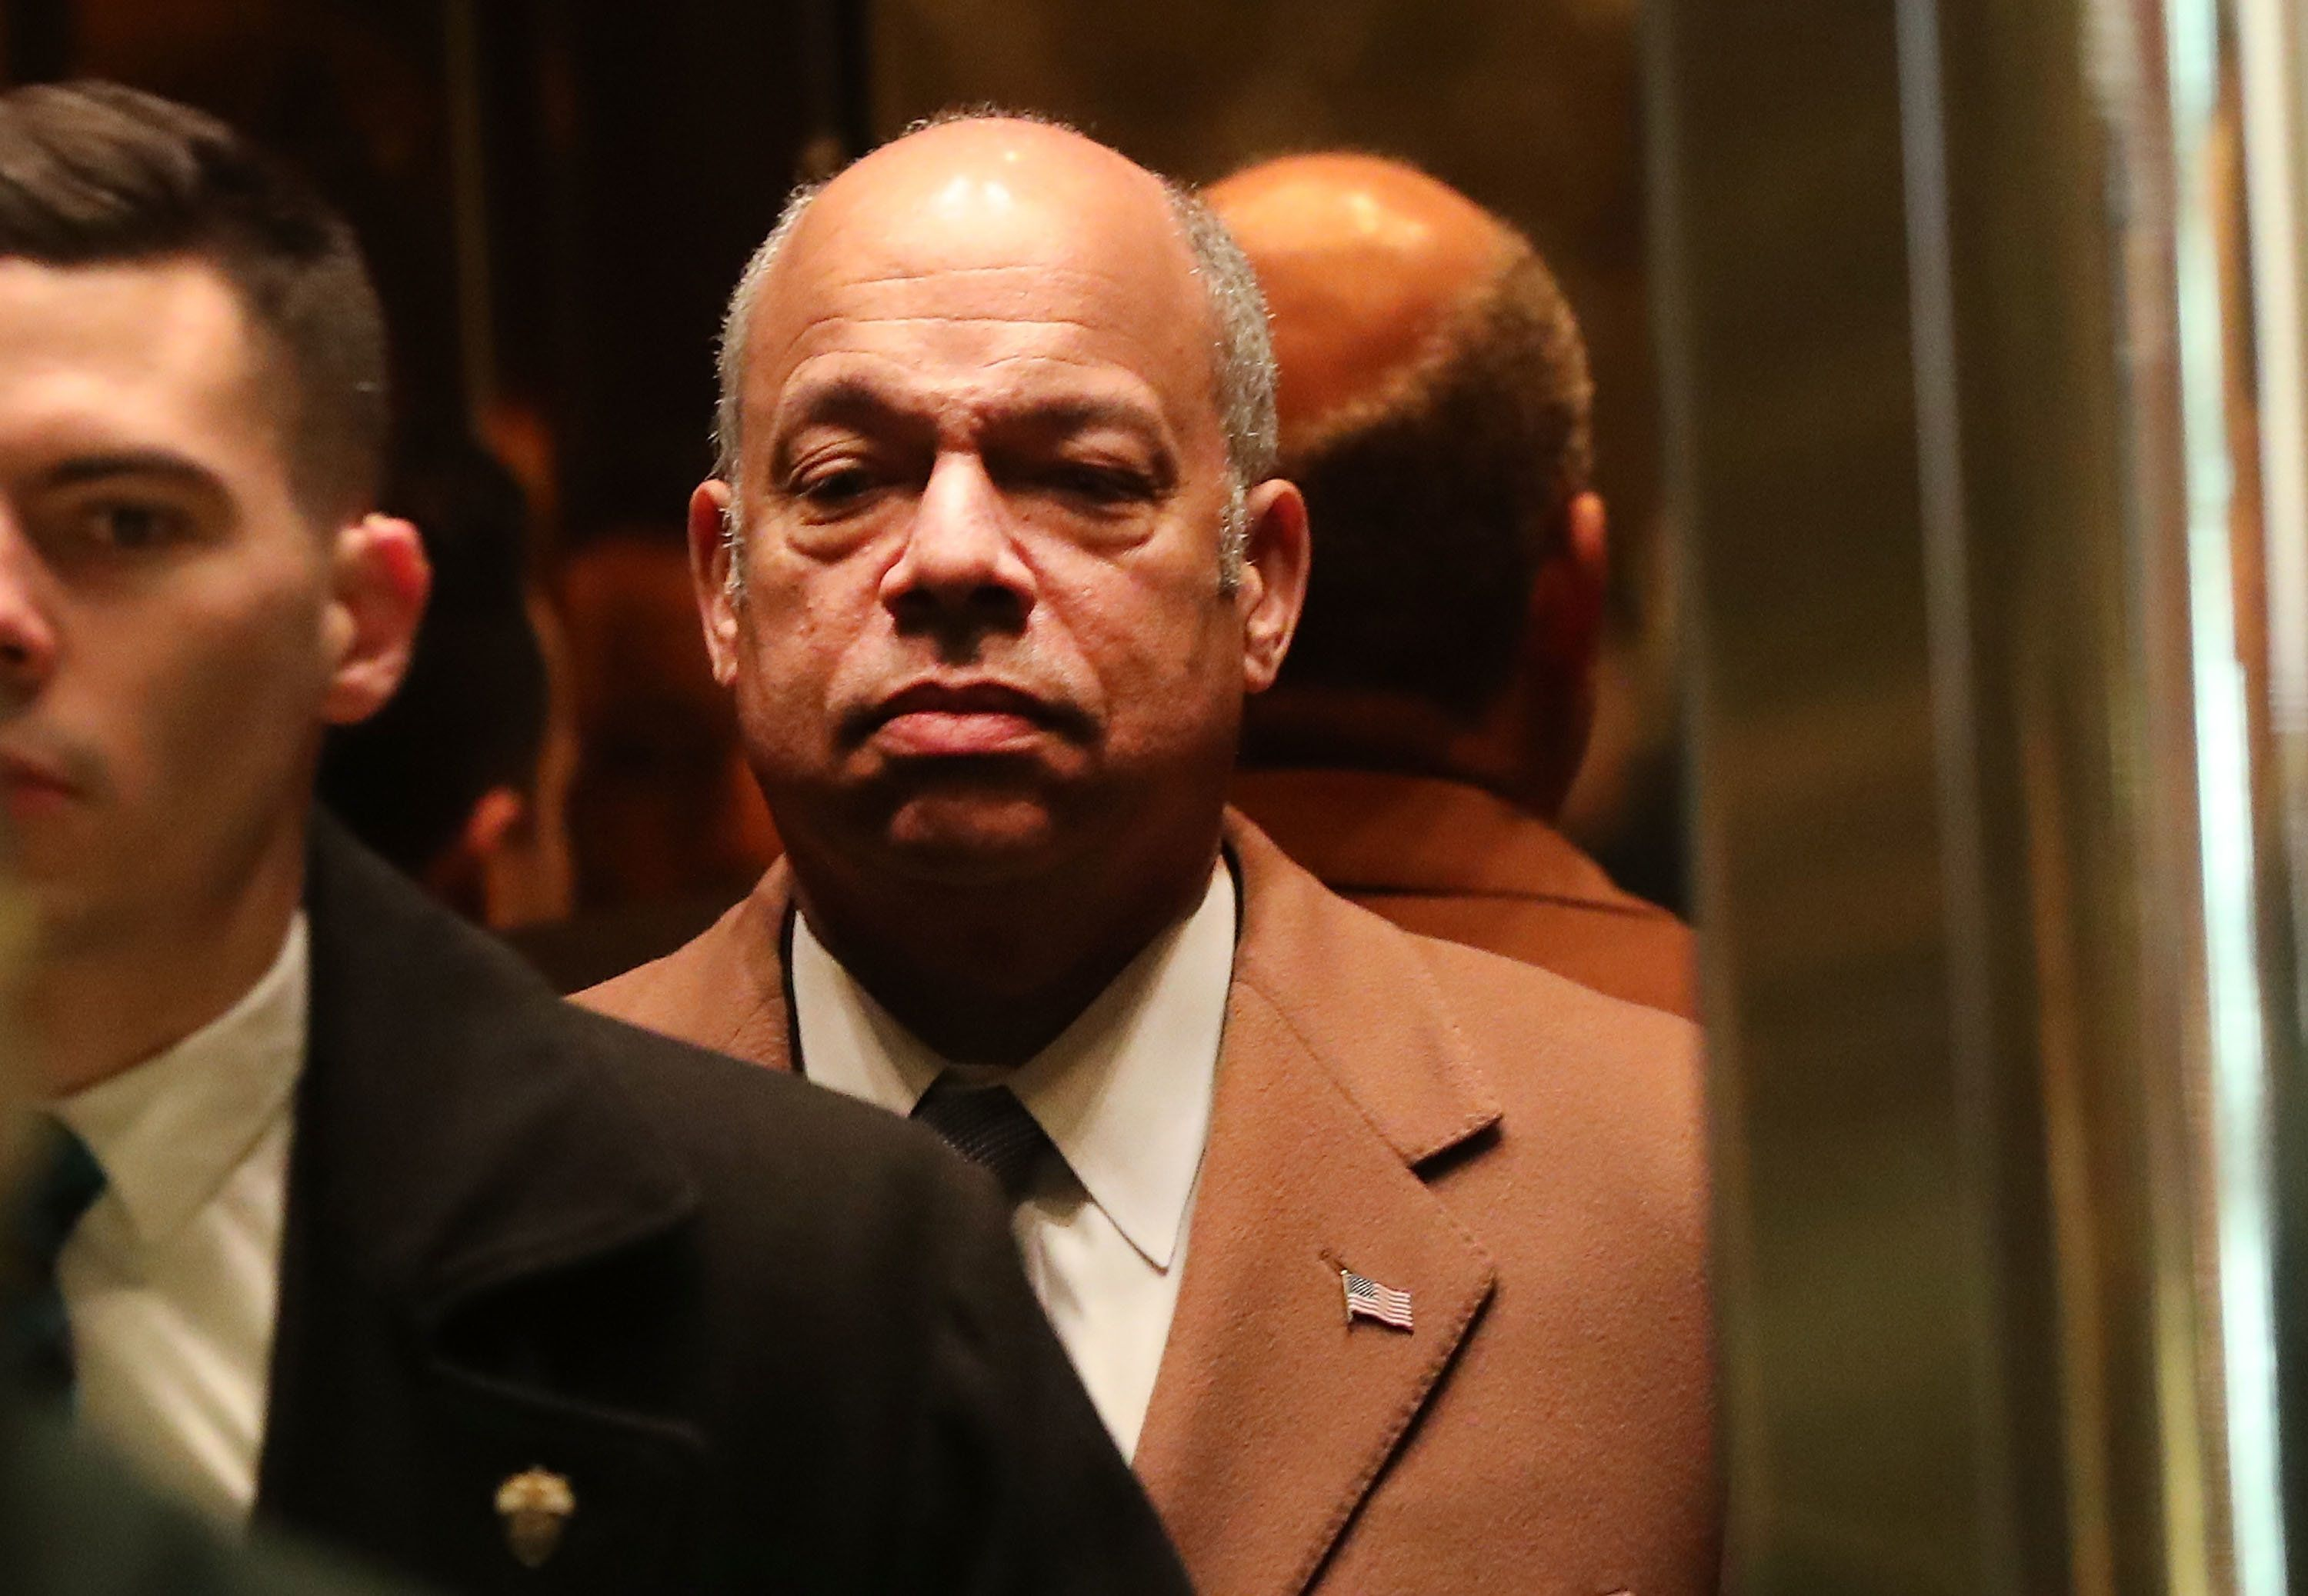 Homeland Security Secretary Jeh Johnson arrives at Trump Tower on December 16, 2016 to meet with President-Elect Donald Trump